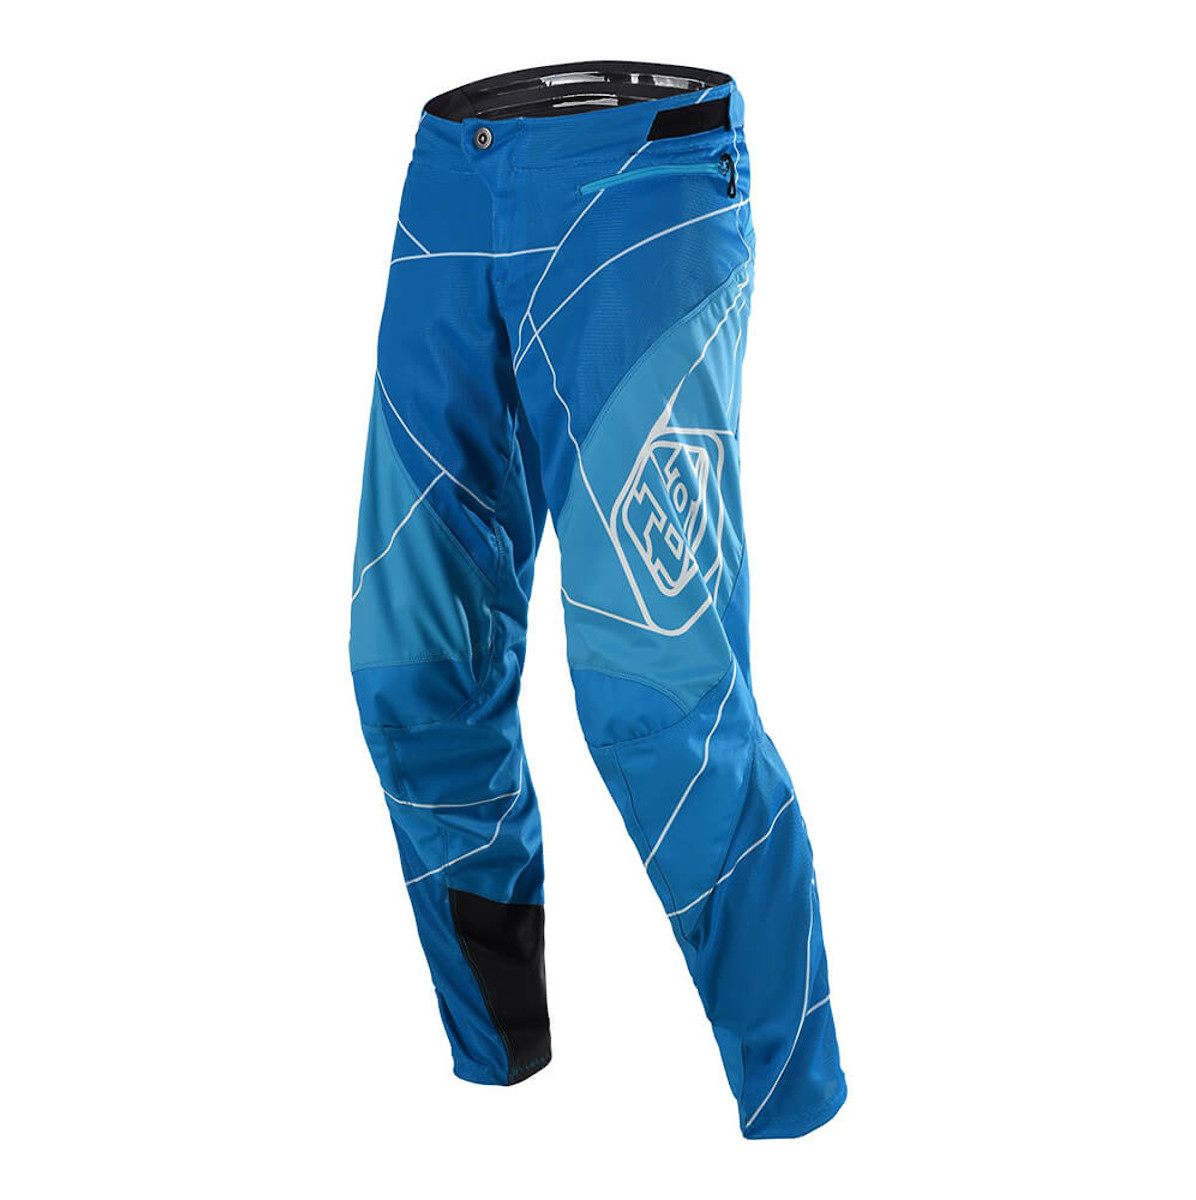 2018 TLD Sprint Youth Metric Blue/White